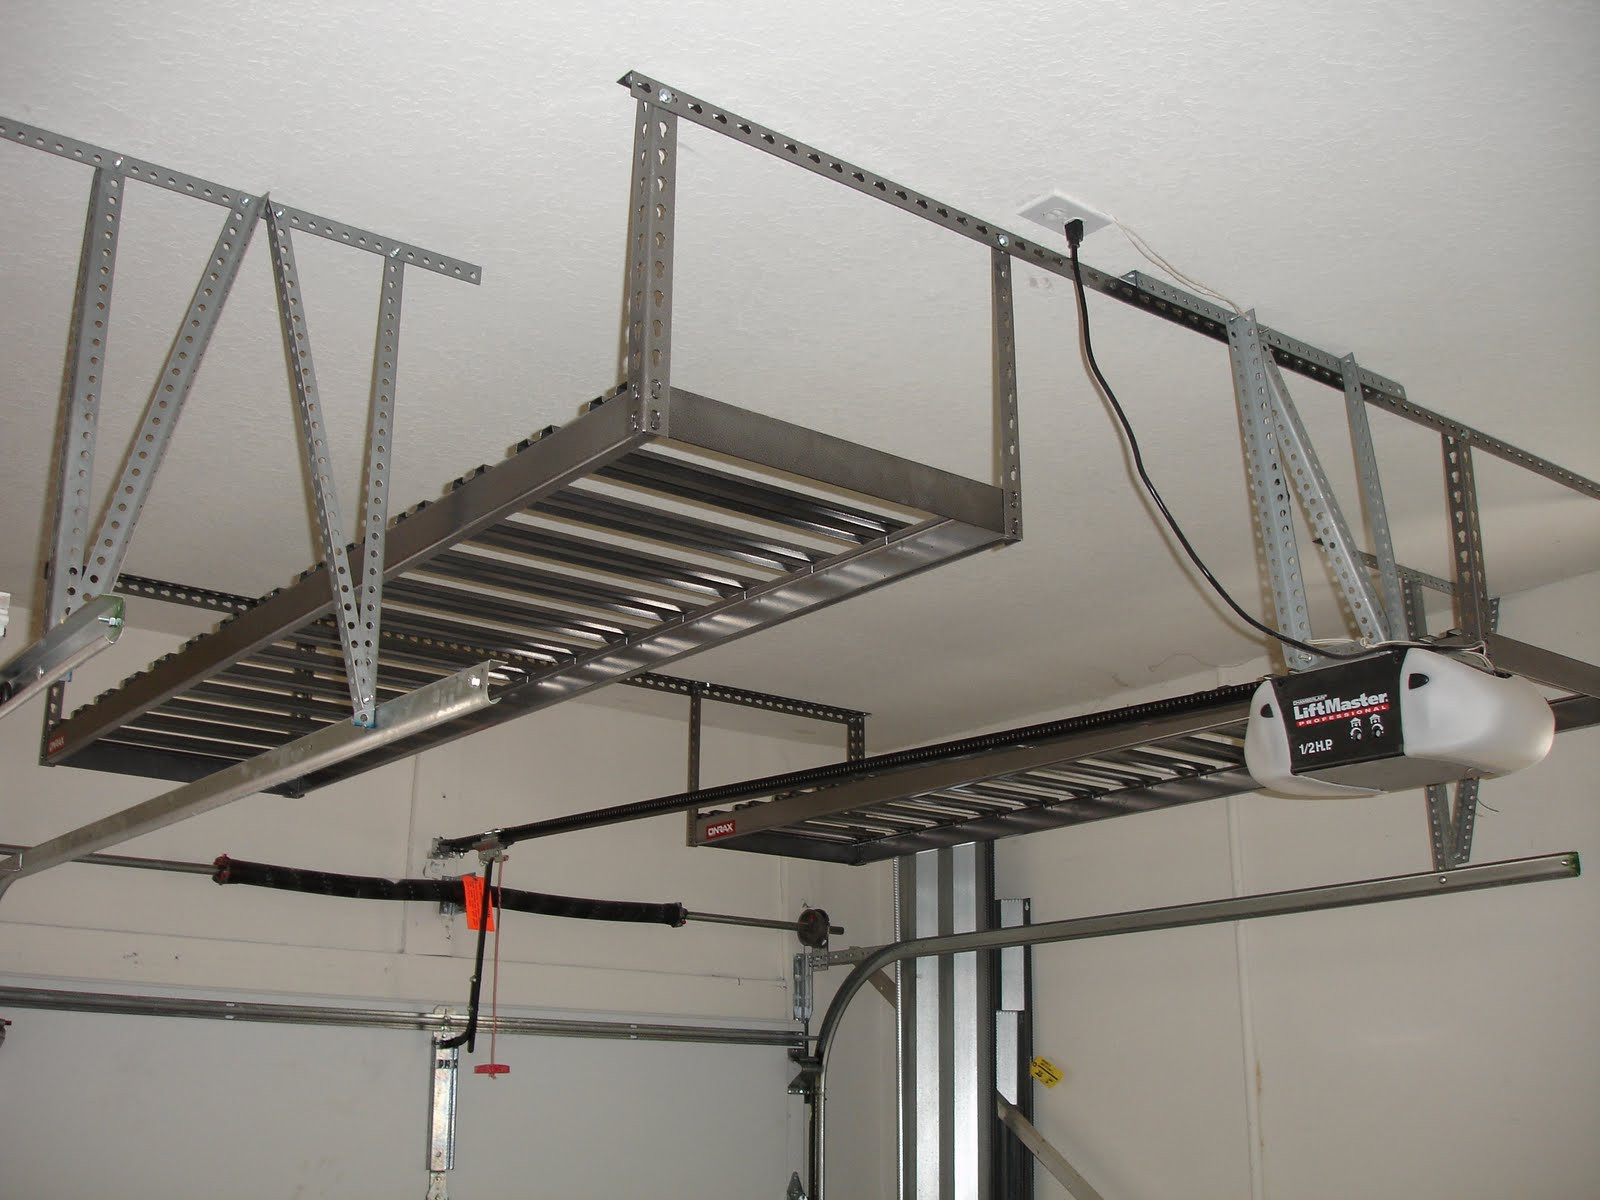 Best ideas about DIY Overhead Garage Storage Plans . Save or Pin Crowded Garage Overhead Storage Diy with White Wall Applied Now.